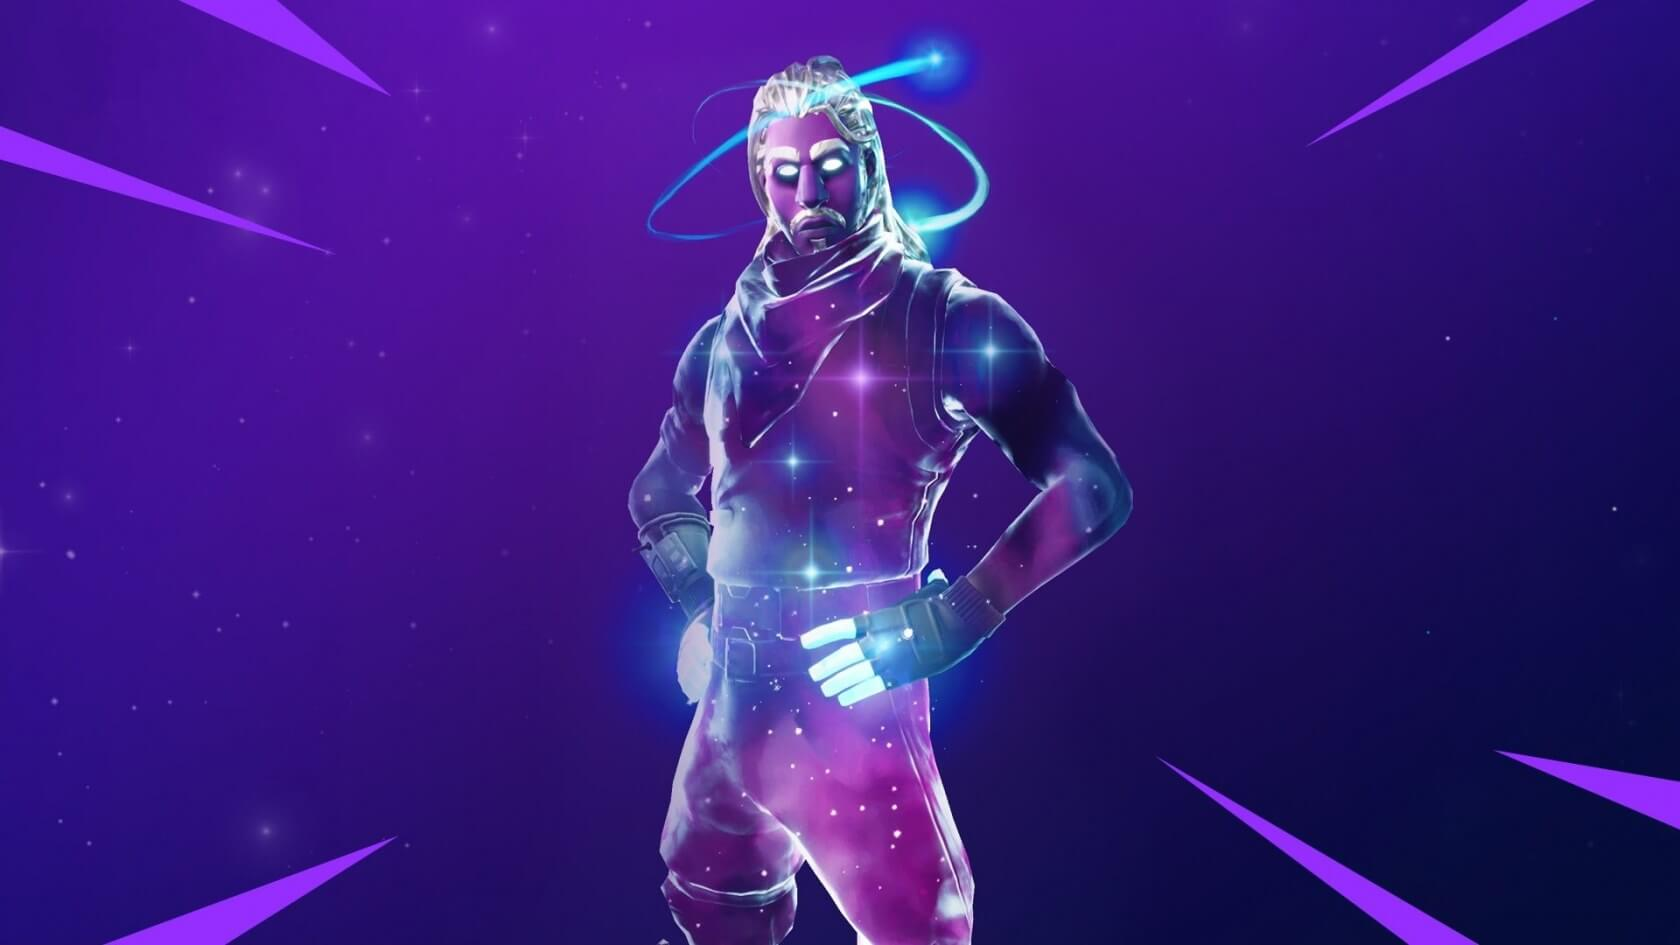 Players use demo phones to get Samsung 'exclusive' Galaxy skin in Fortnite